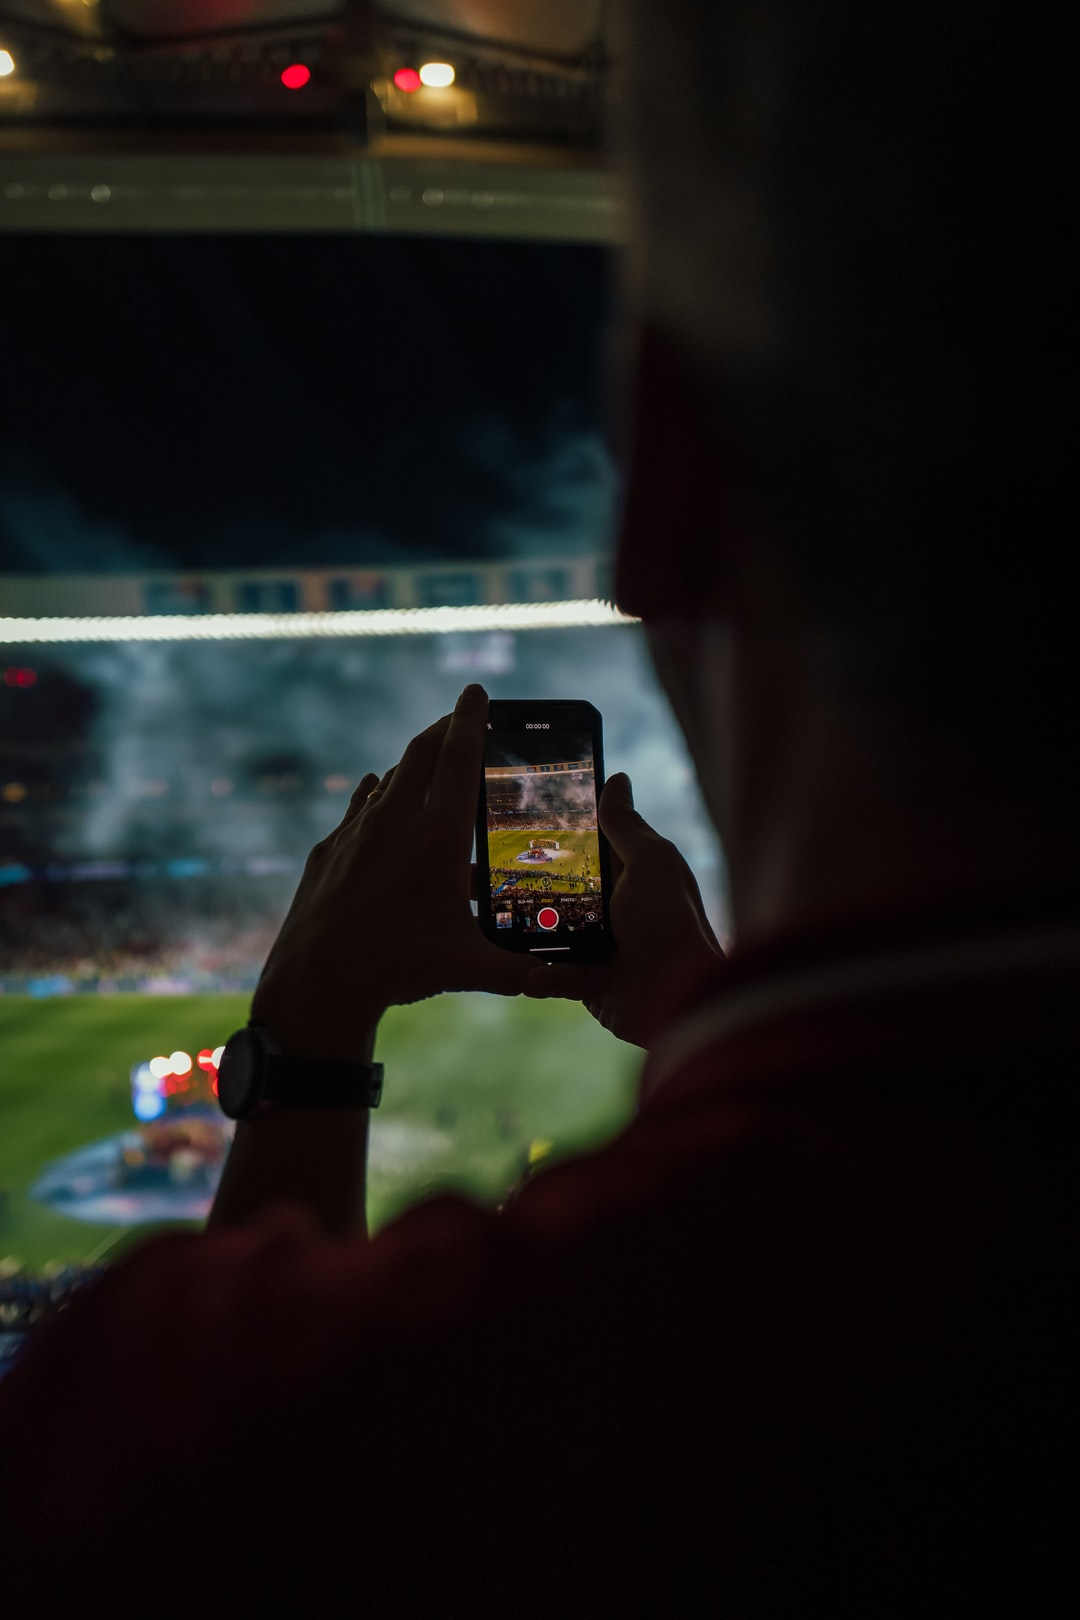 a guy making photos of the celebration after the Champions League final at the Wanda Metropolitano in Madrid